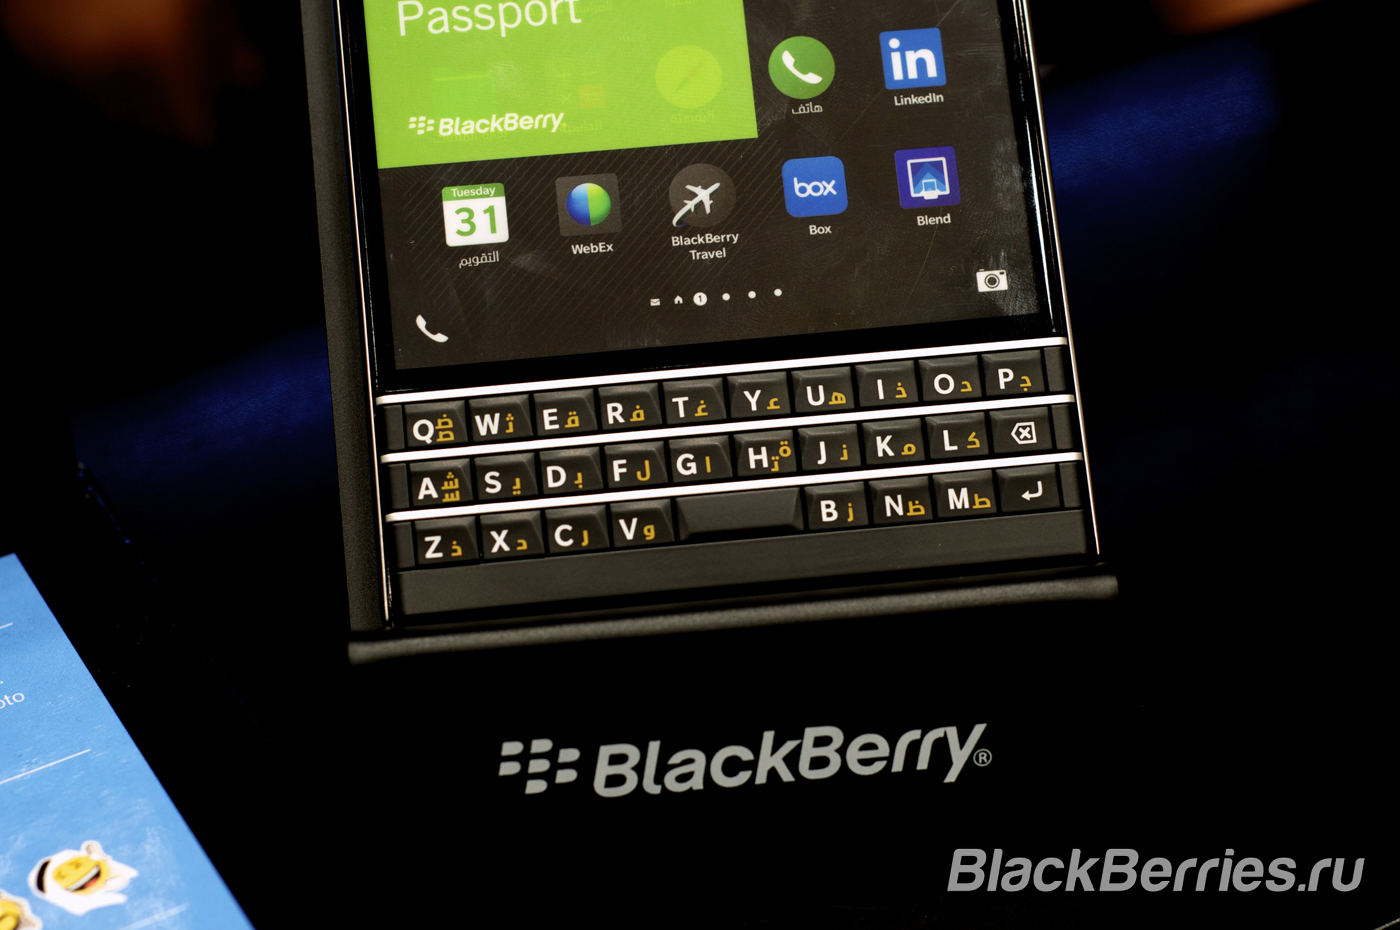 BlackBerry-Passport-Event-108